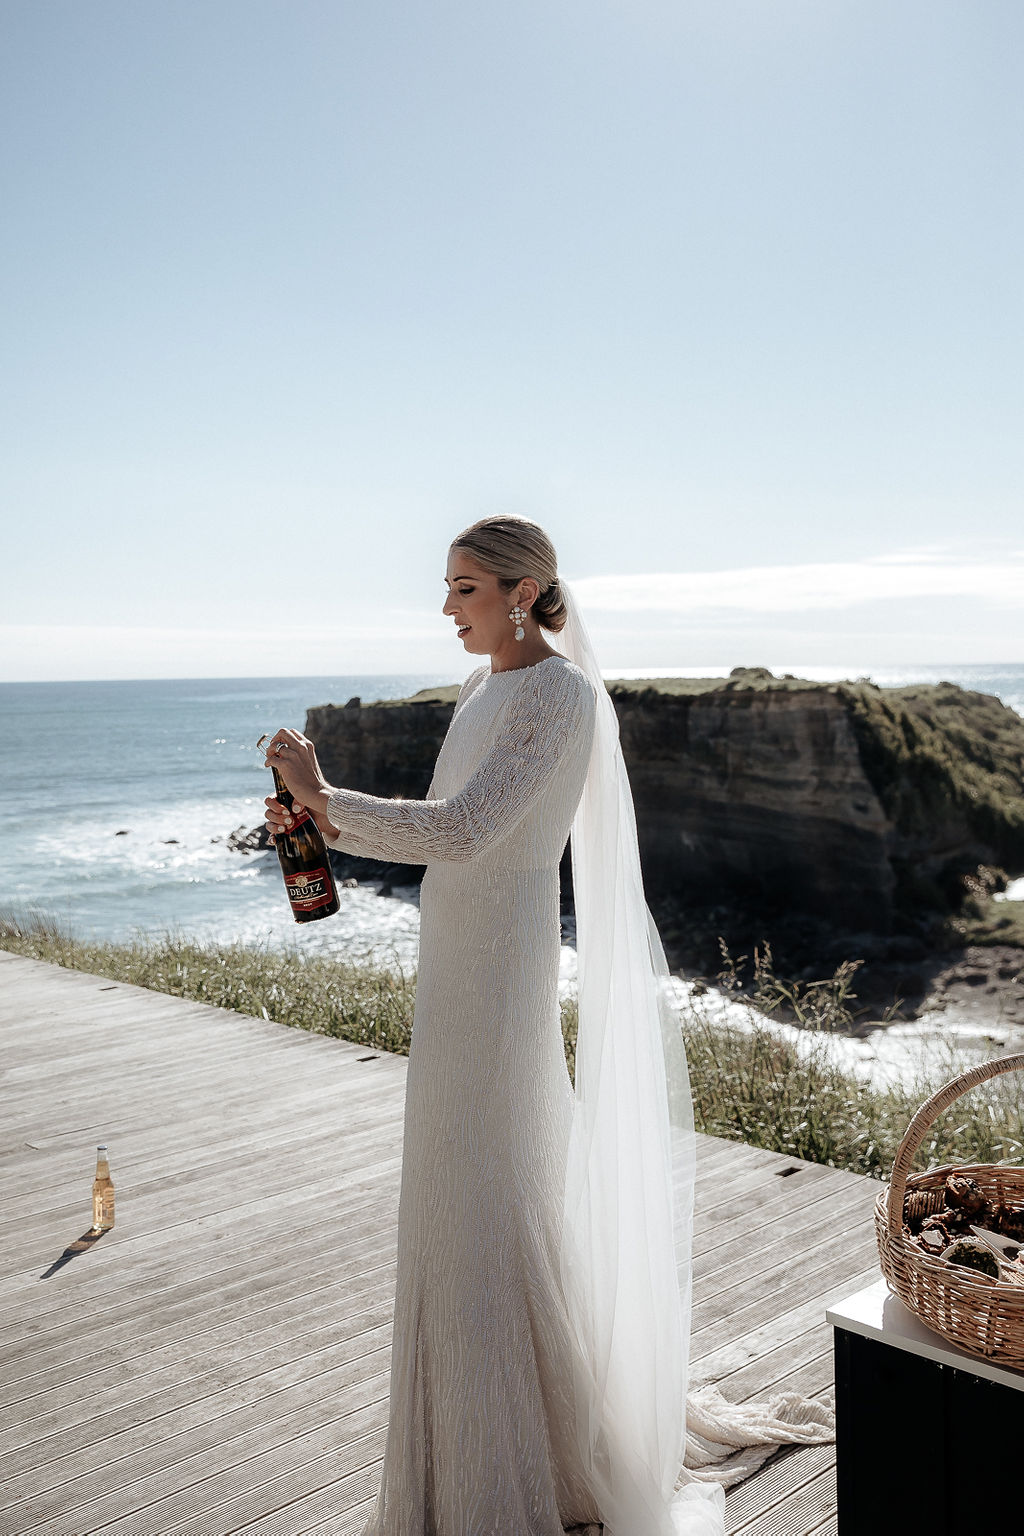 KWH real bride Hannah pops a bottle of bubbly with the New Zealand coast in the background. She dons the trendy sequined Margareta gown with low back and long sleeves.